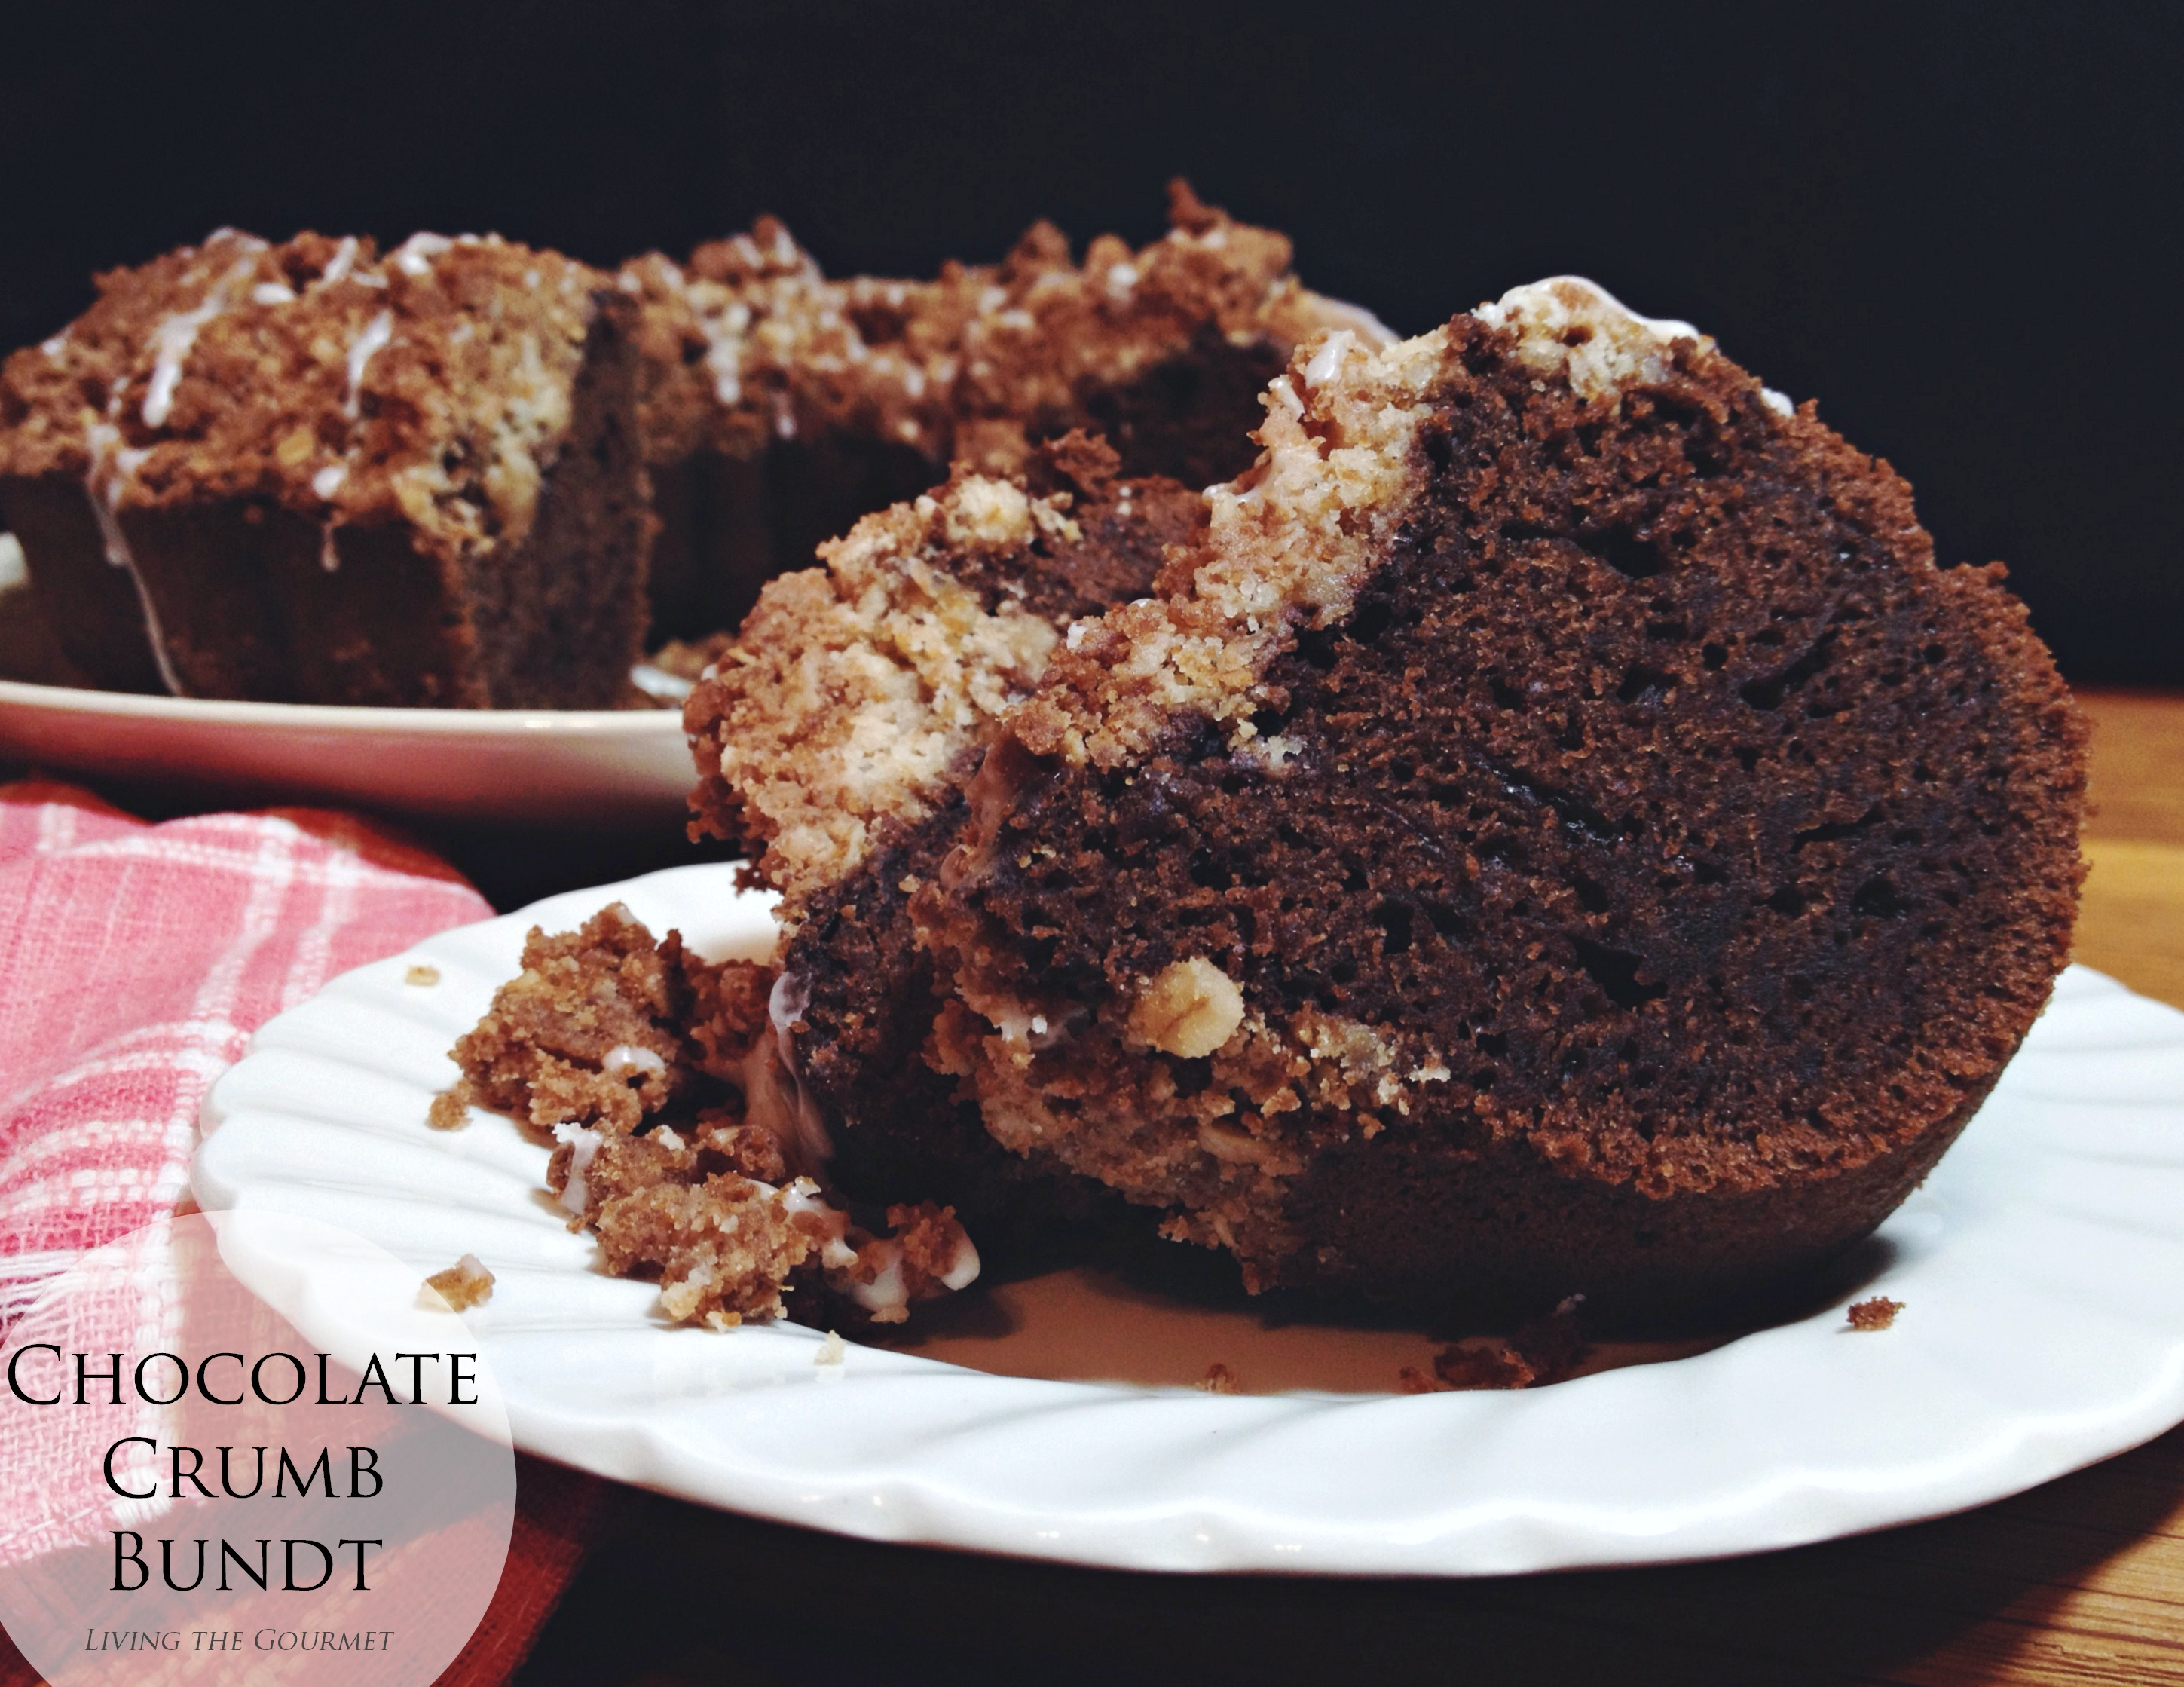 Living the Gourmet: Chocolate Crumb Bundt #BundtBakers